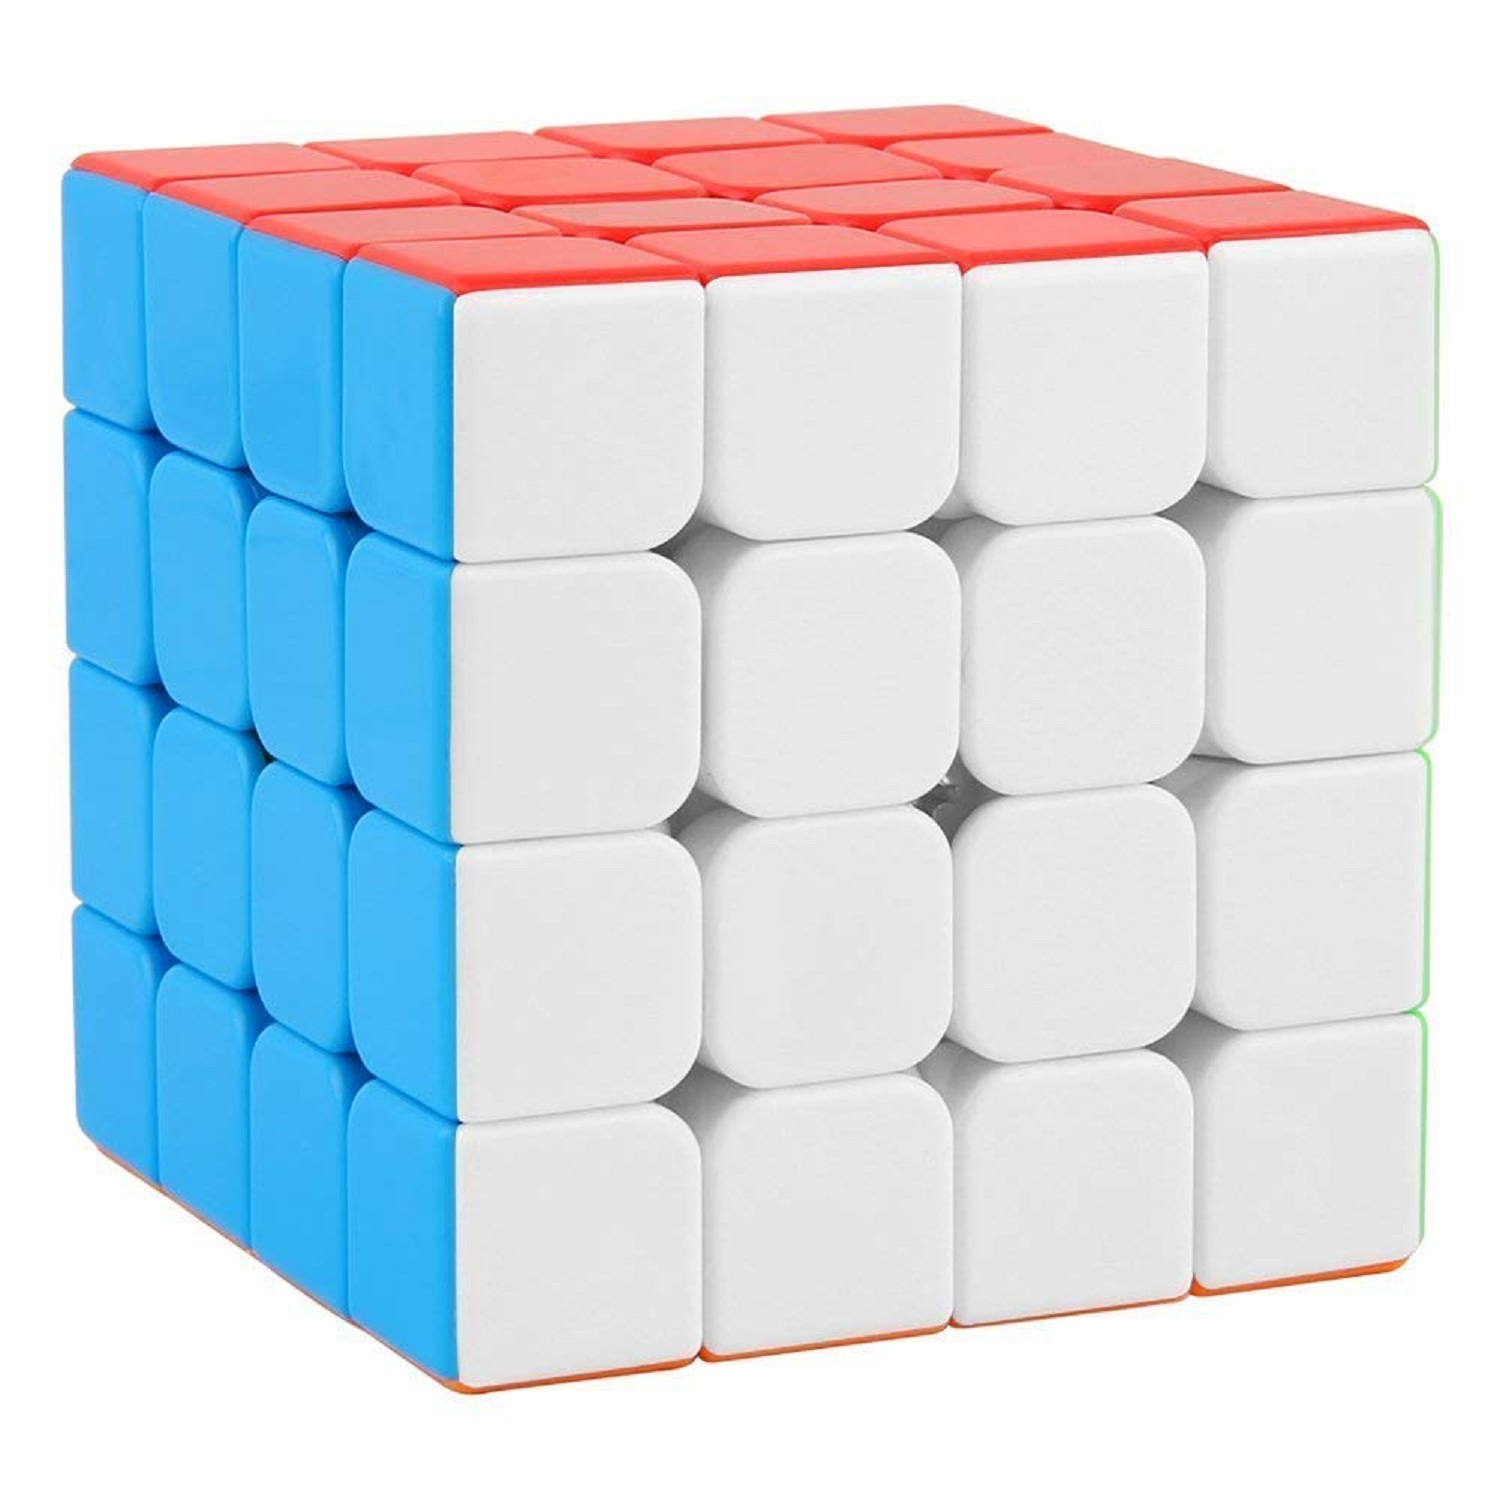 Aseenaa Cube 4x4 High Speed Puzzle Cubes Game Toys for Kids Adults   Set of 1